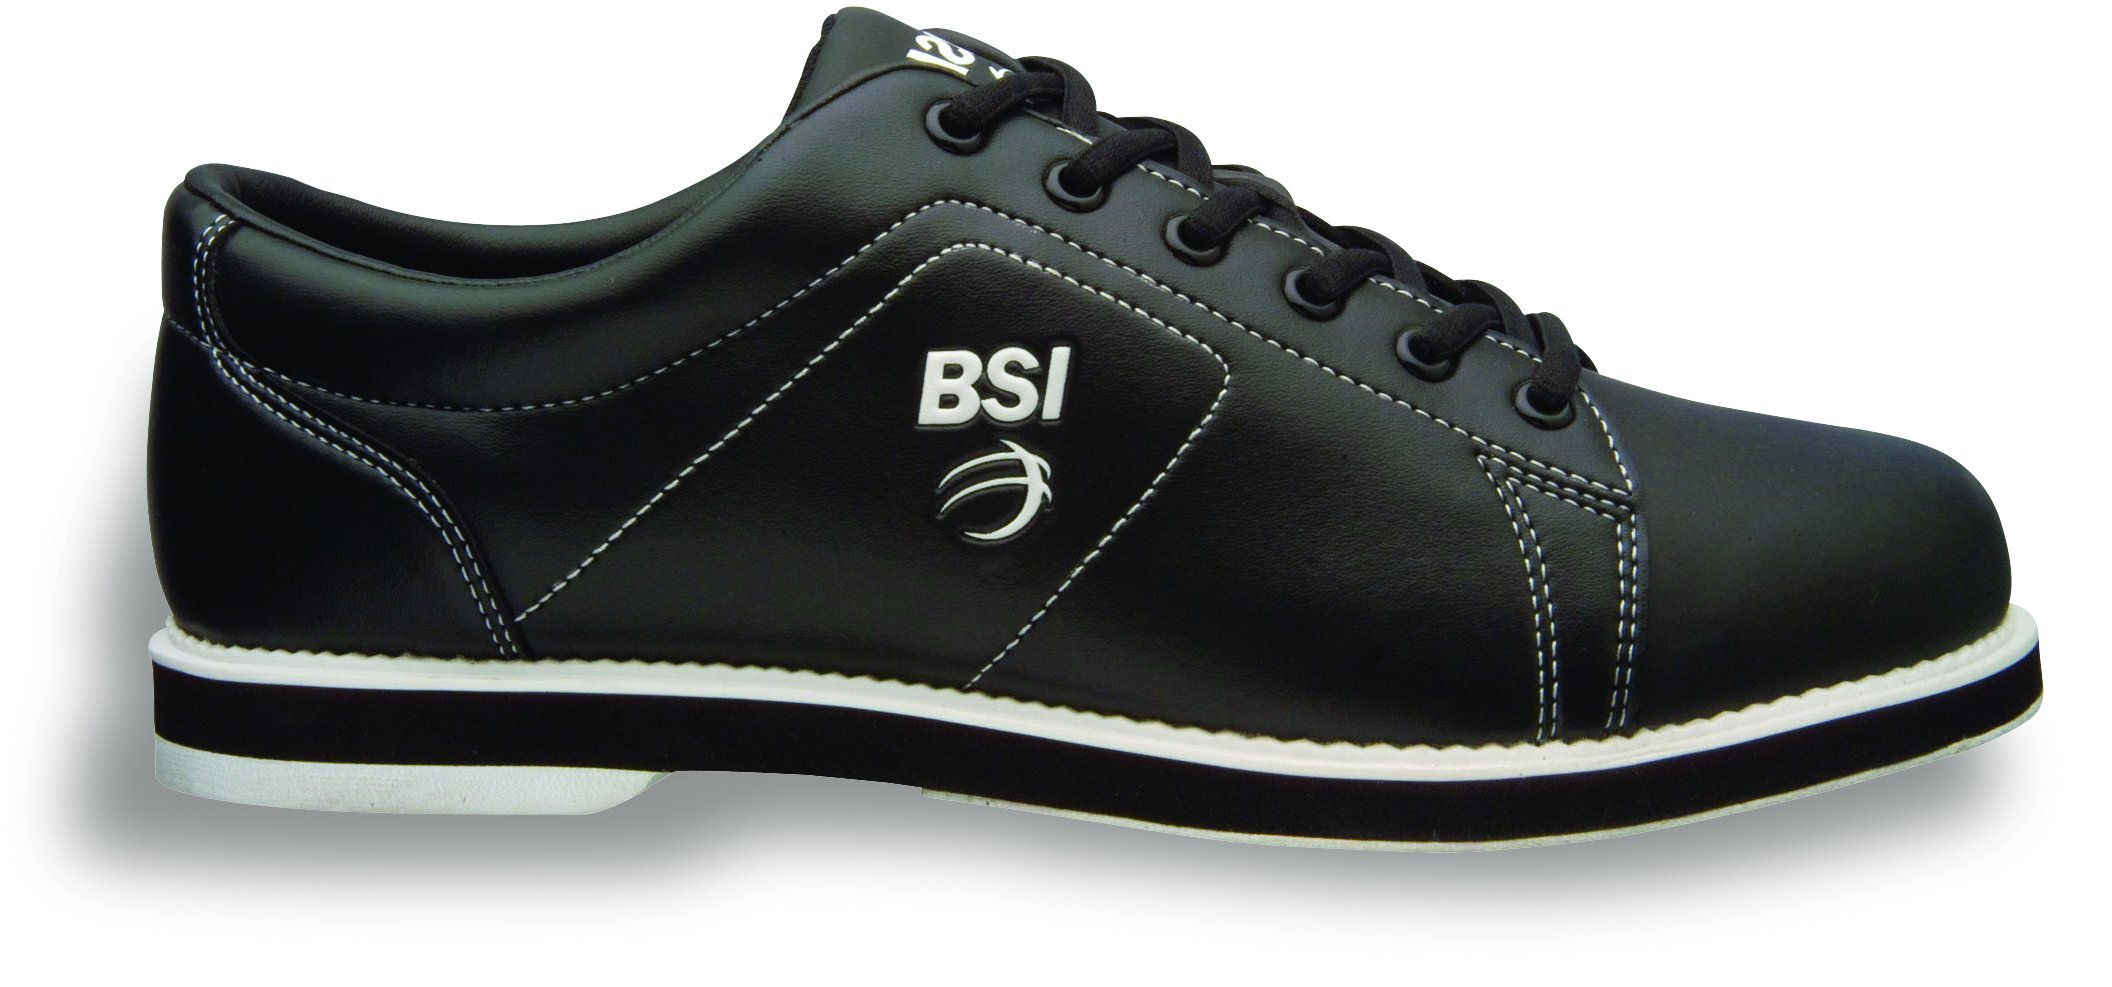 BSI Men's #751 Bowling Shoes, Black, Size 10.5 by BSI